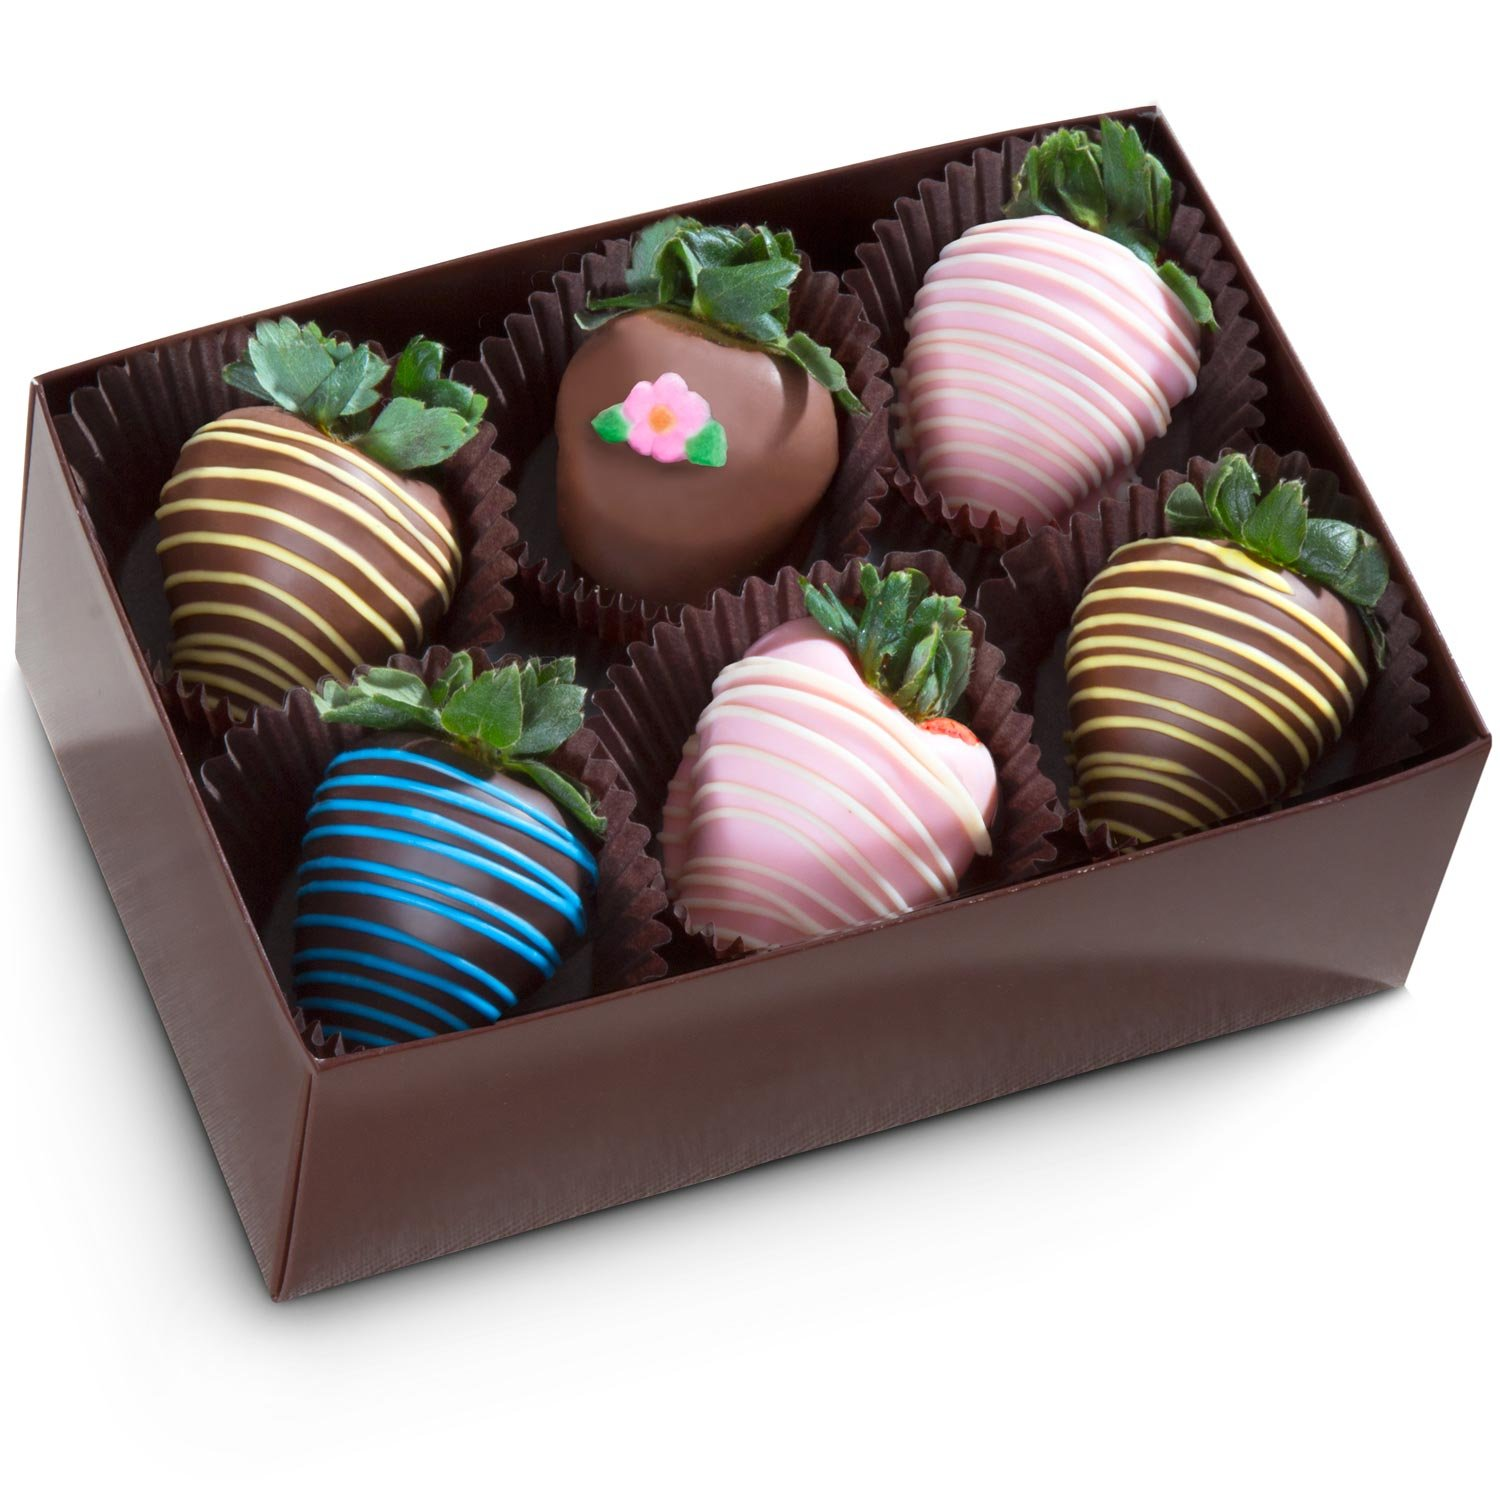 Golden State Fruit 6 Piece Chocolate Covered Strawberries by Golden State Fruit (Image #2)